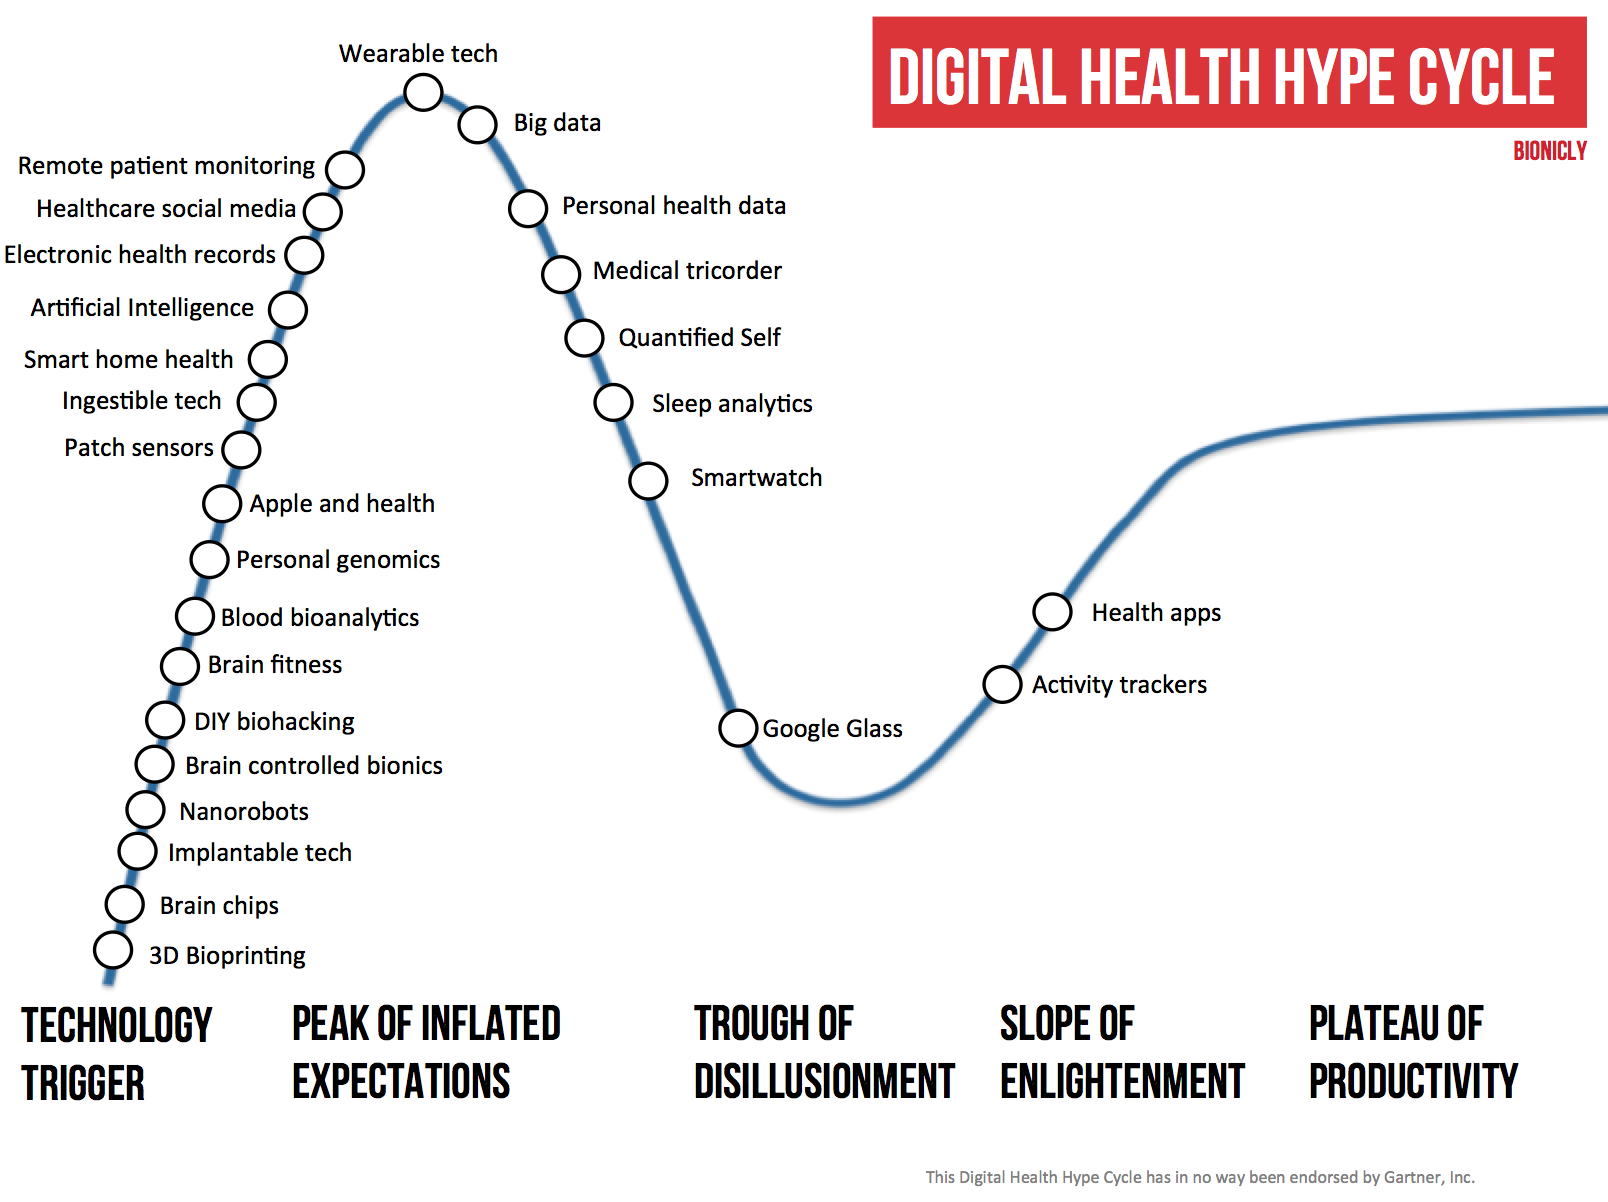 Digital health hype cycle